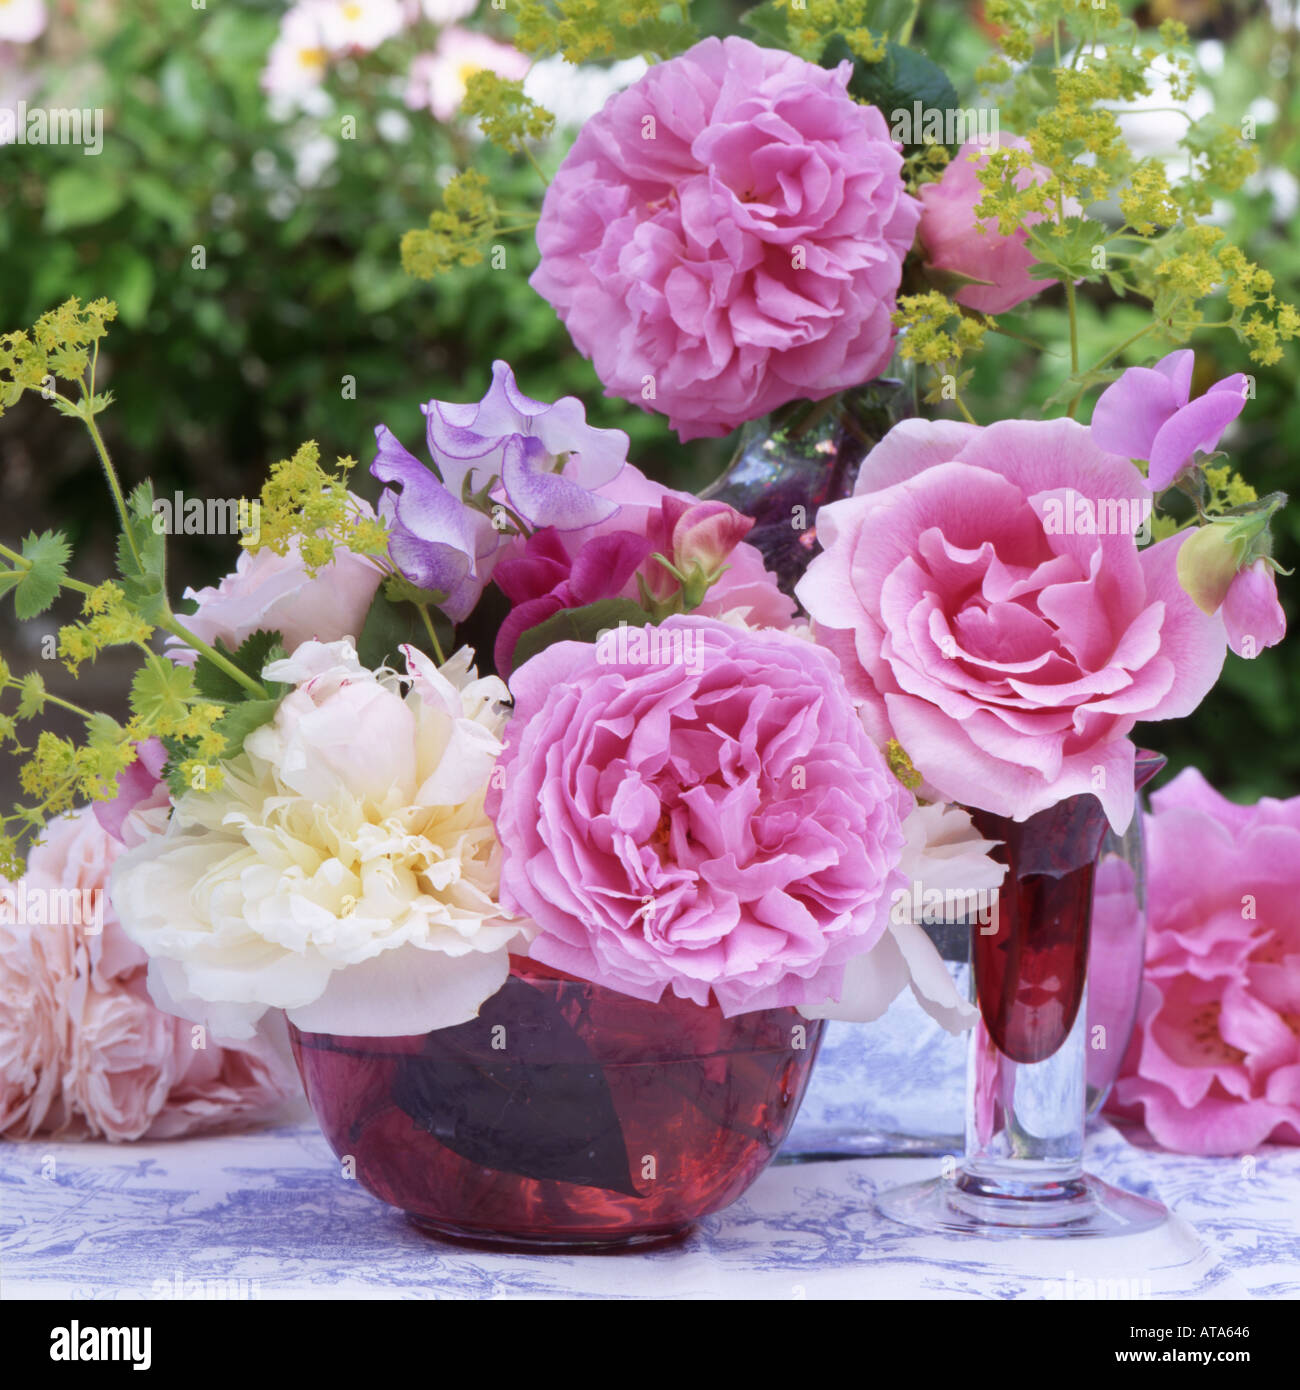 A floral still life with roses paeonies and sweet peas and cranberry glass in an English Garden Stock Photo